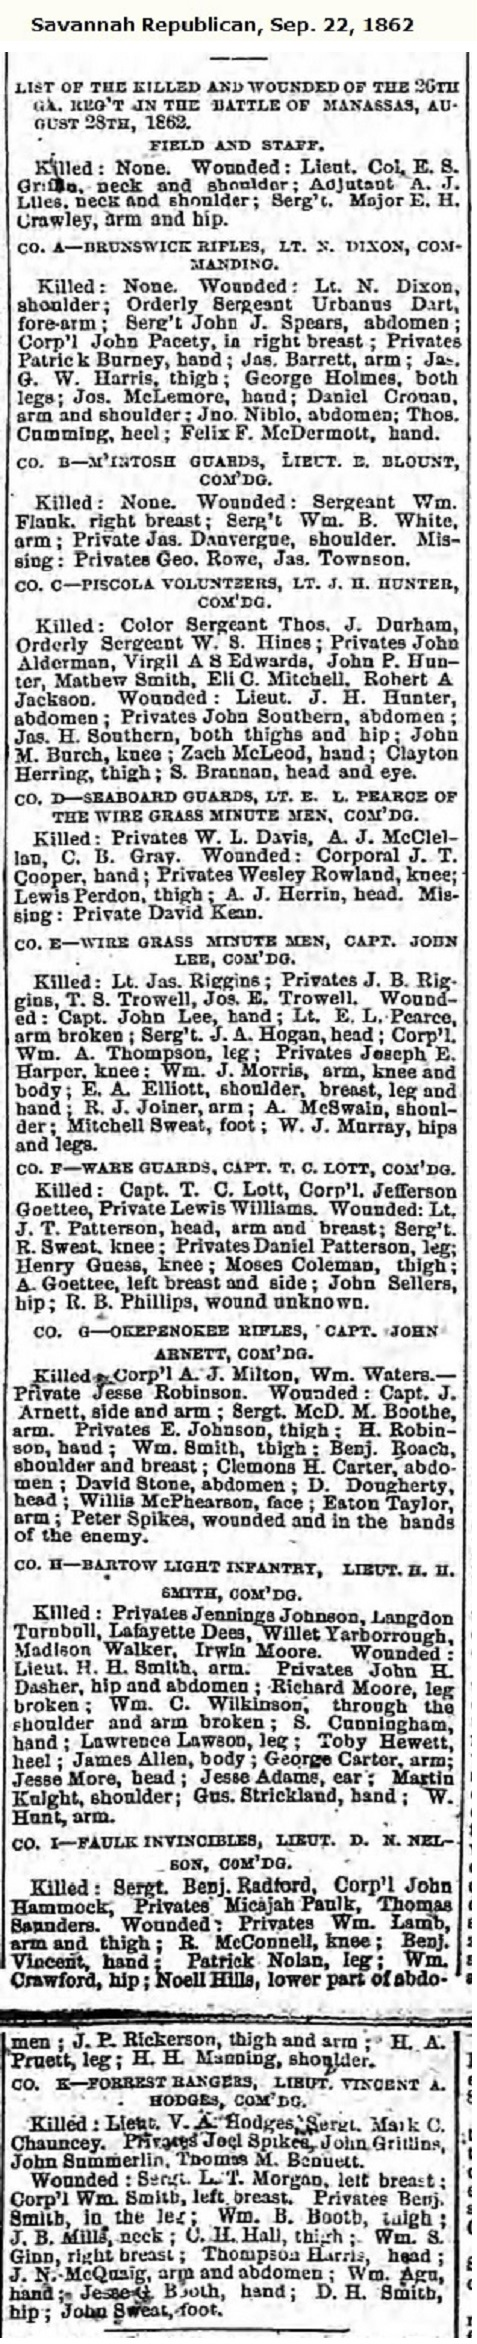 26th Georgia Regiment casualties at the Battle of Brawner's Farm